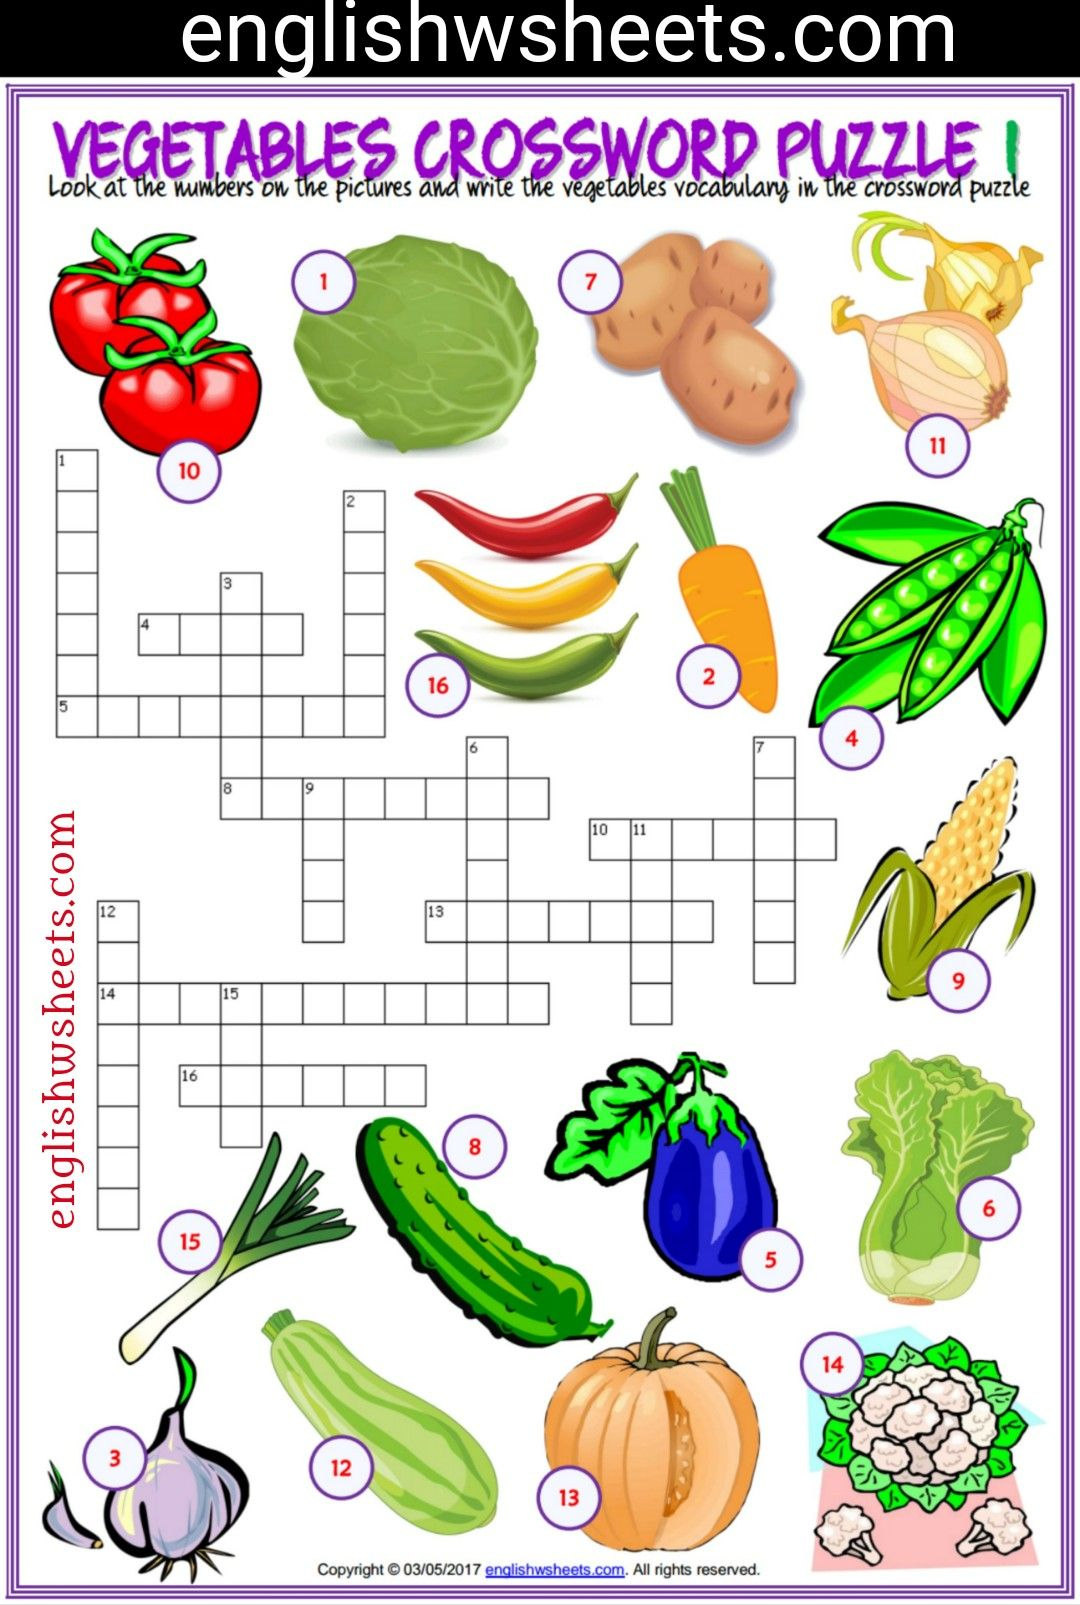 Vegetables Esl Printable Crossword Puzzle Worksheets For Kids - Printable Crossword Esl